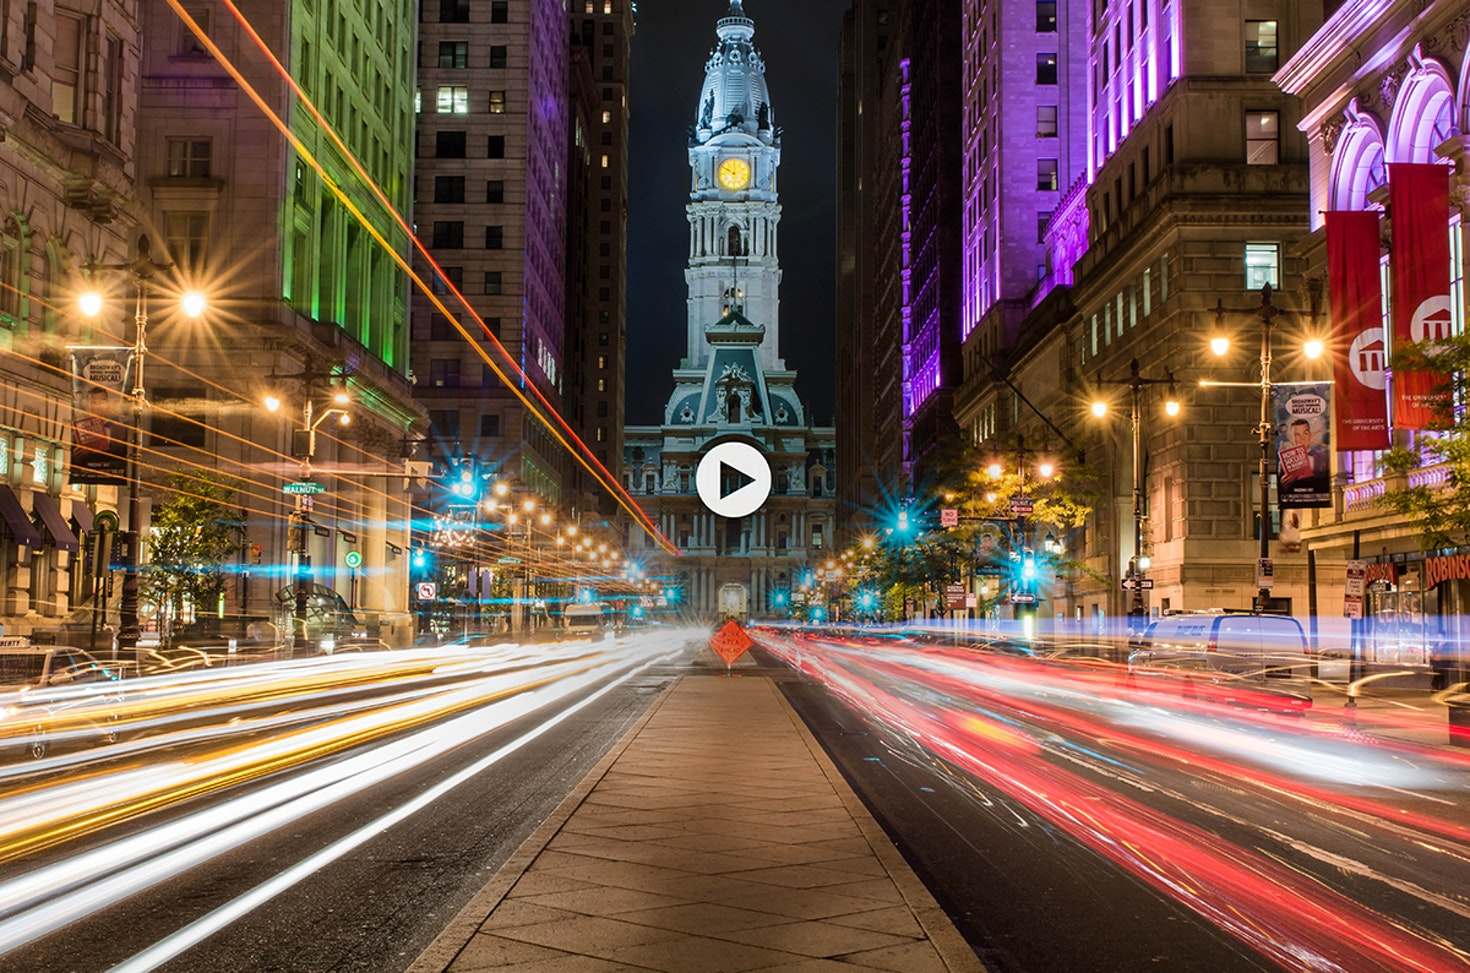 Cars whizzing past nightlife leading to the Philadelphia City Hall © Víctor Fernández / 500px